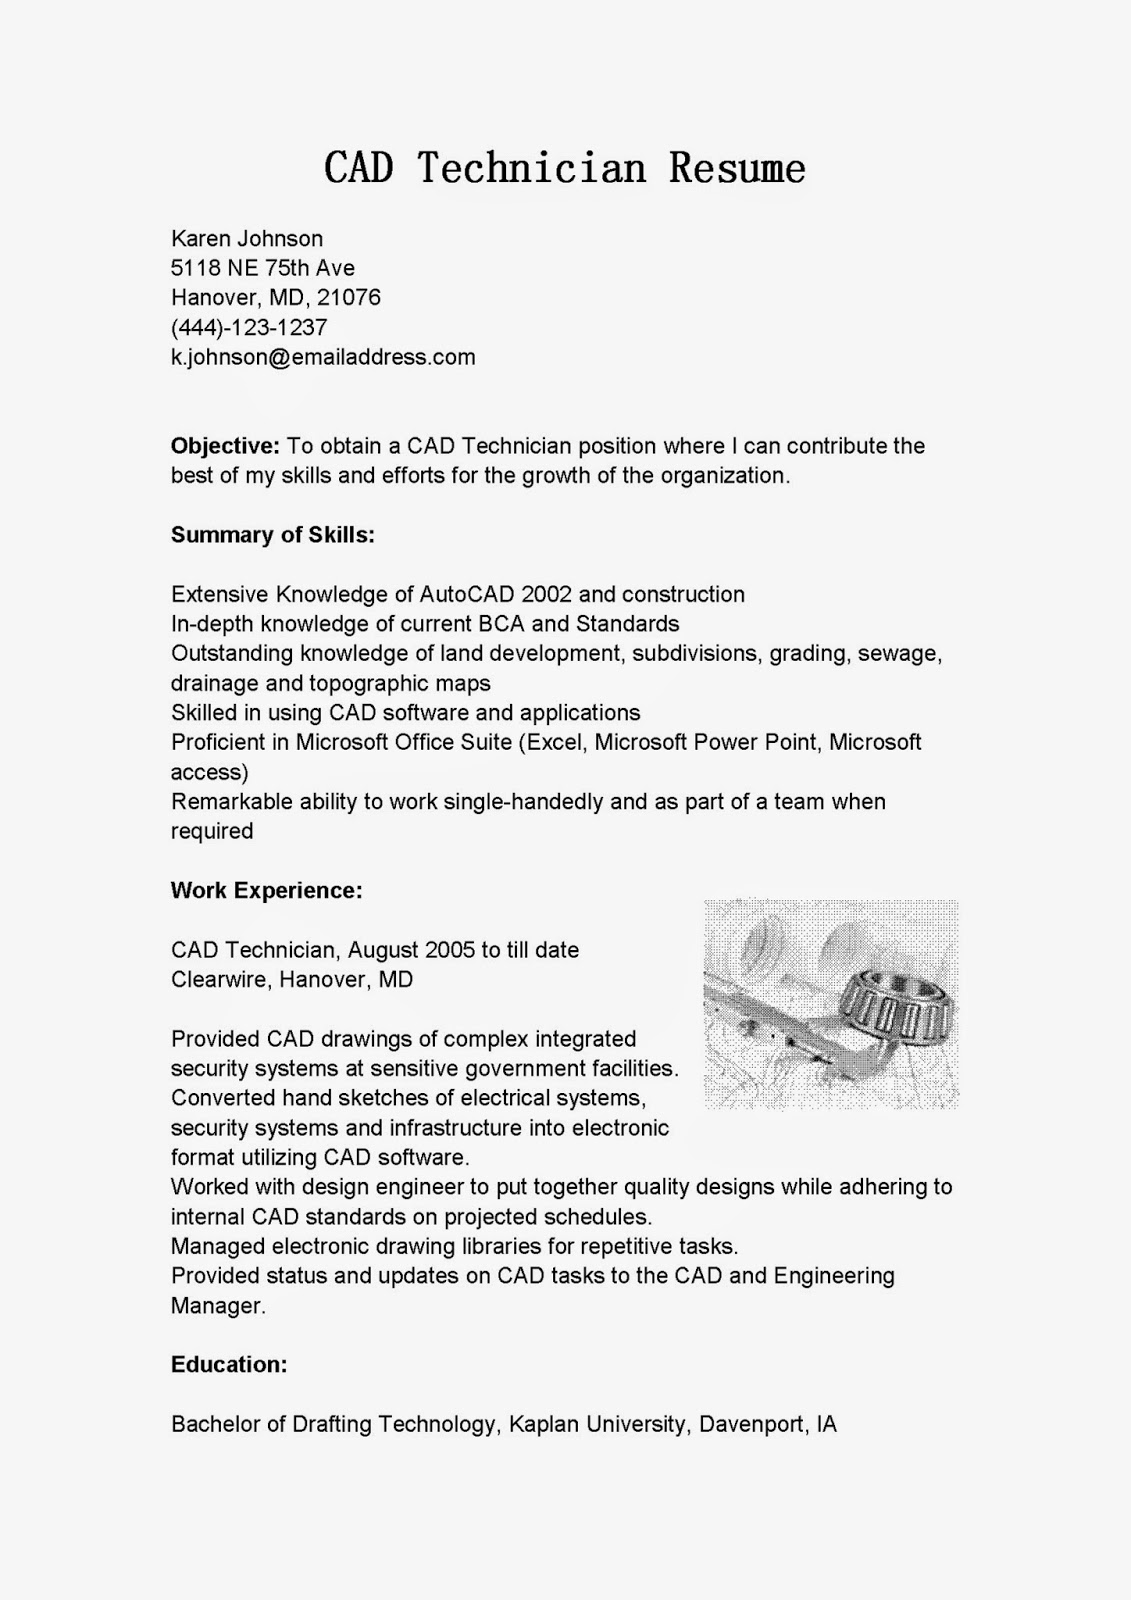 Cad Technician | Resume CV Cover Letter